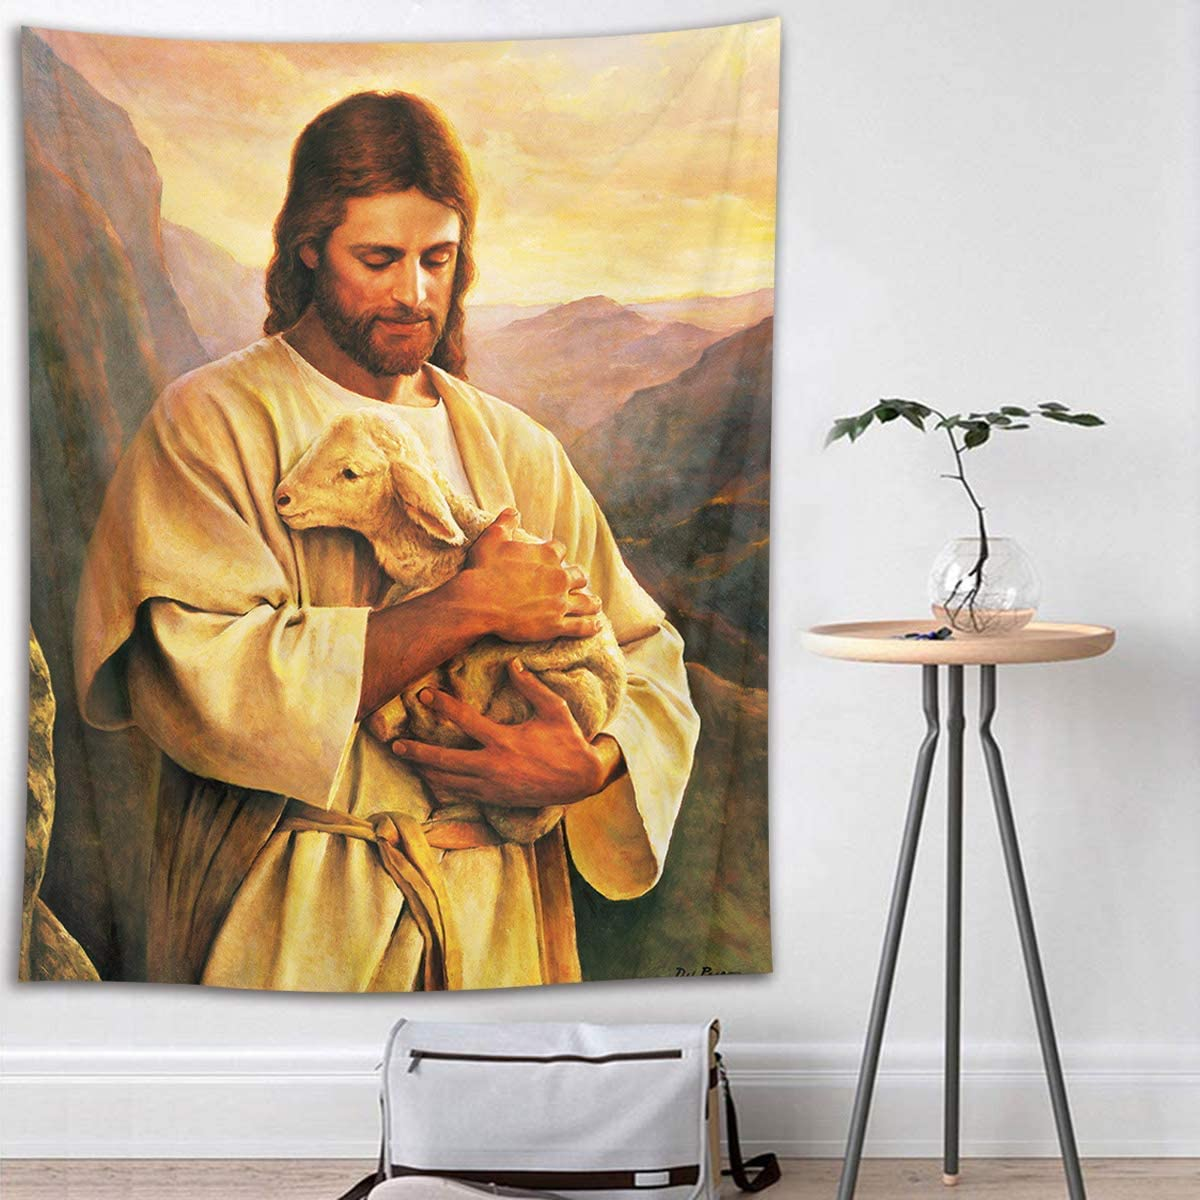 JOOCAR Christian Tapestry Jesus Christ with Lamb in Mountain Wall Hanging Easter Tapestries Hanging Art Decor for Living Room Bedroom